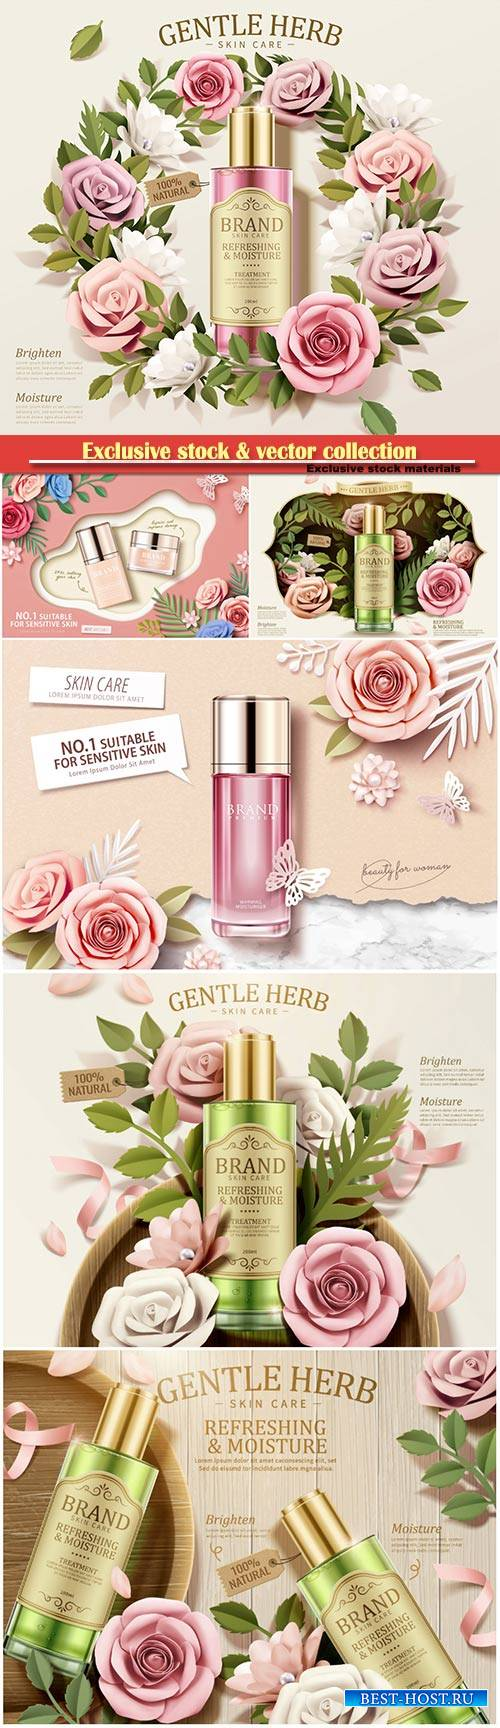 Gentle herb toner ads with paper flowers in 3d illustration, top view